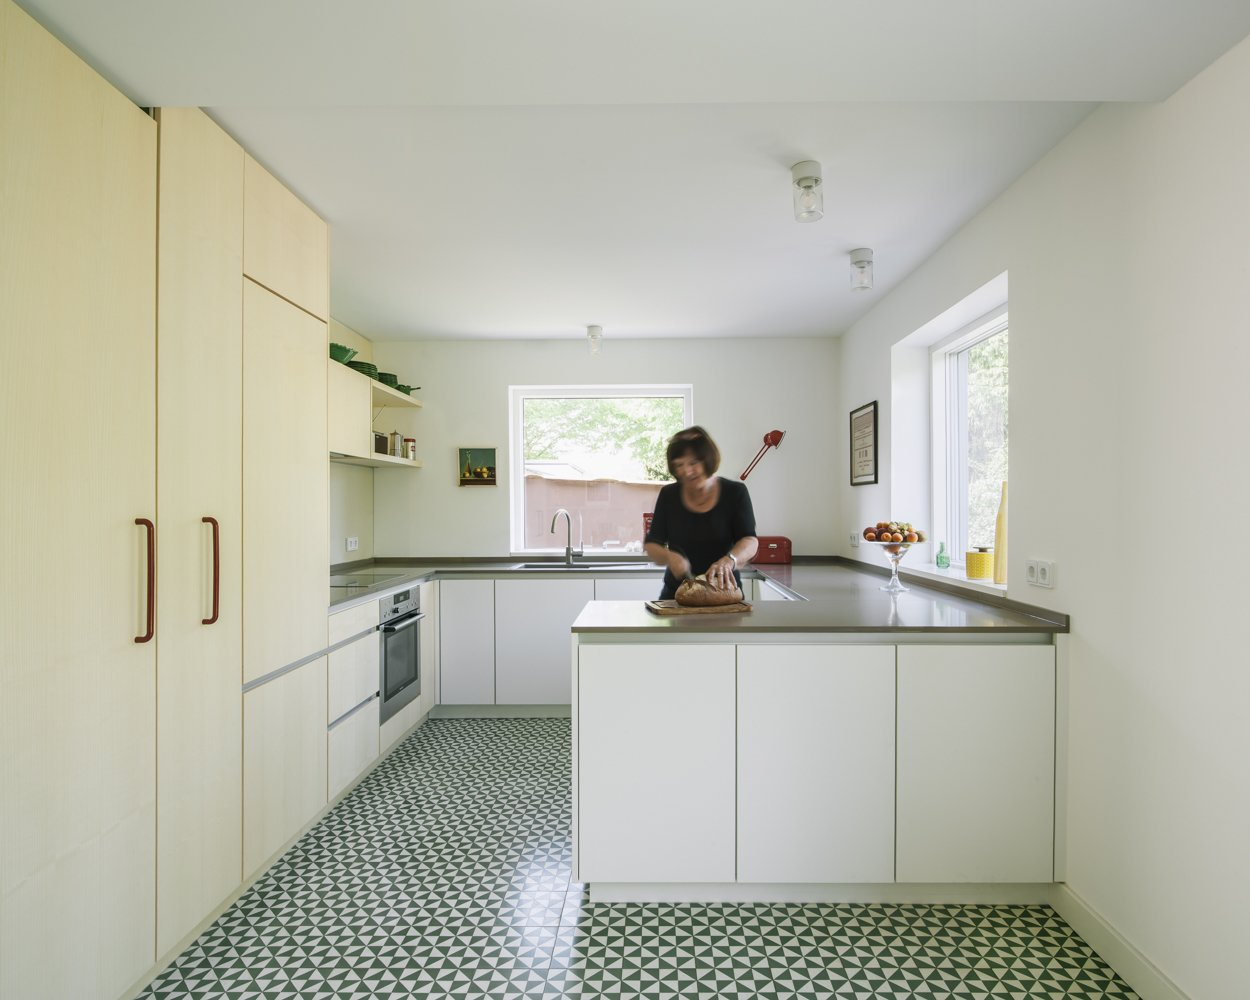 Kitchen, Engineered Quartz Counter, Cement Tile Floor, White Cabinet, Wood Cabinet, Wood Backsplashe, Drop In Sink, and Ceiling Lighting kitchen  Haus Mai by Project Architecture Company